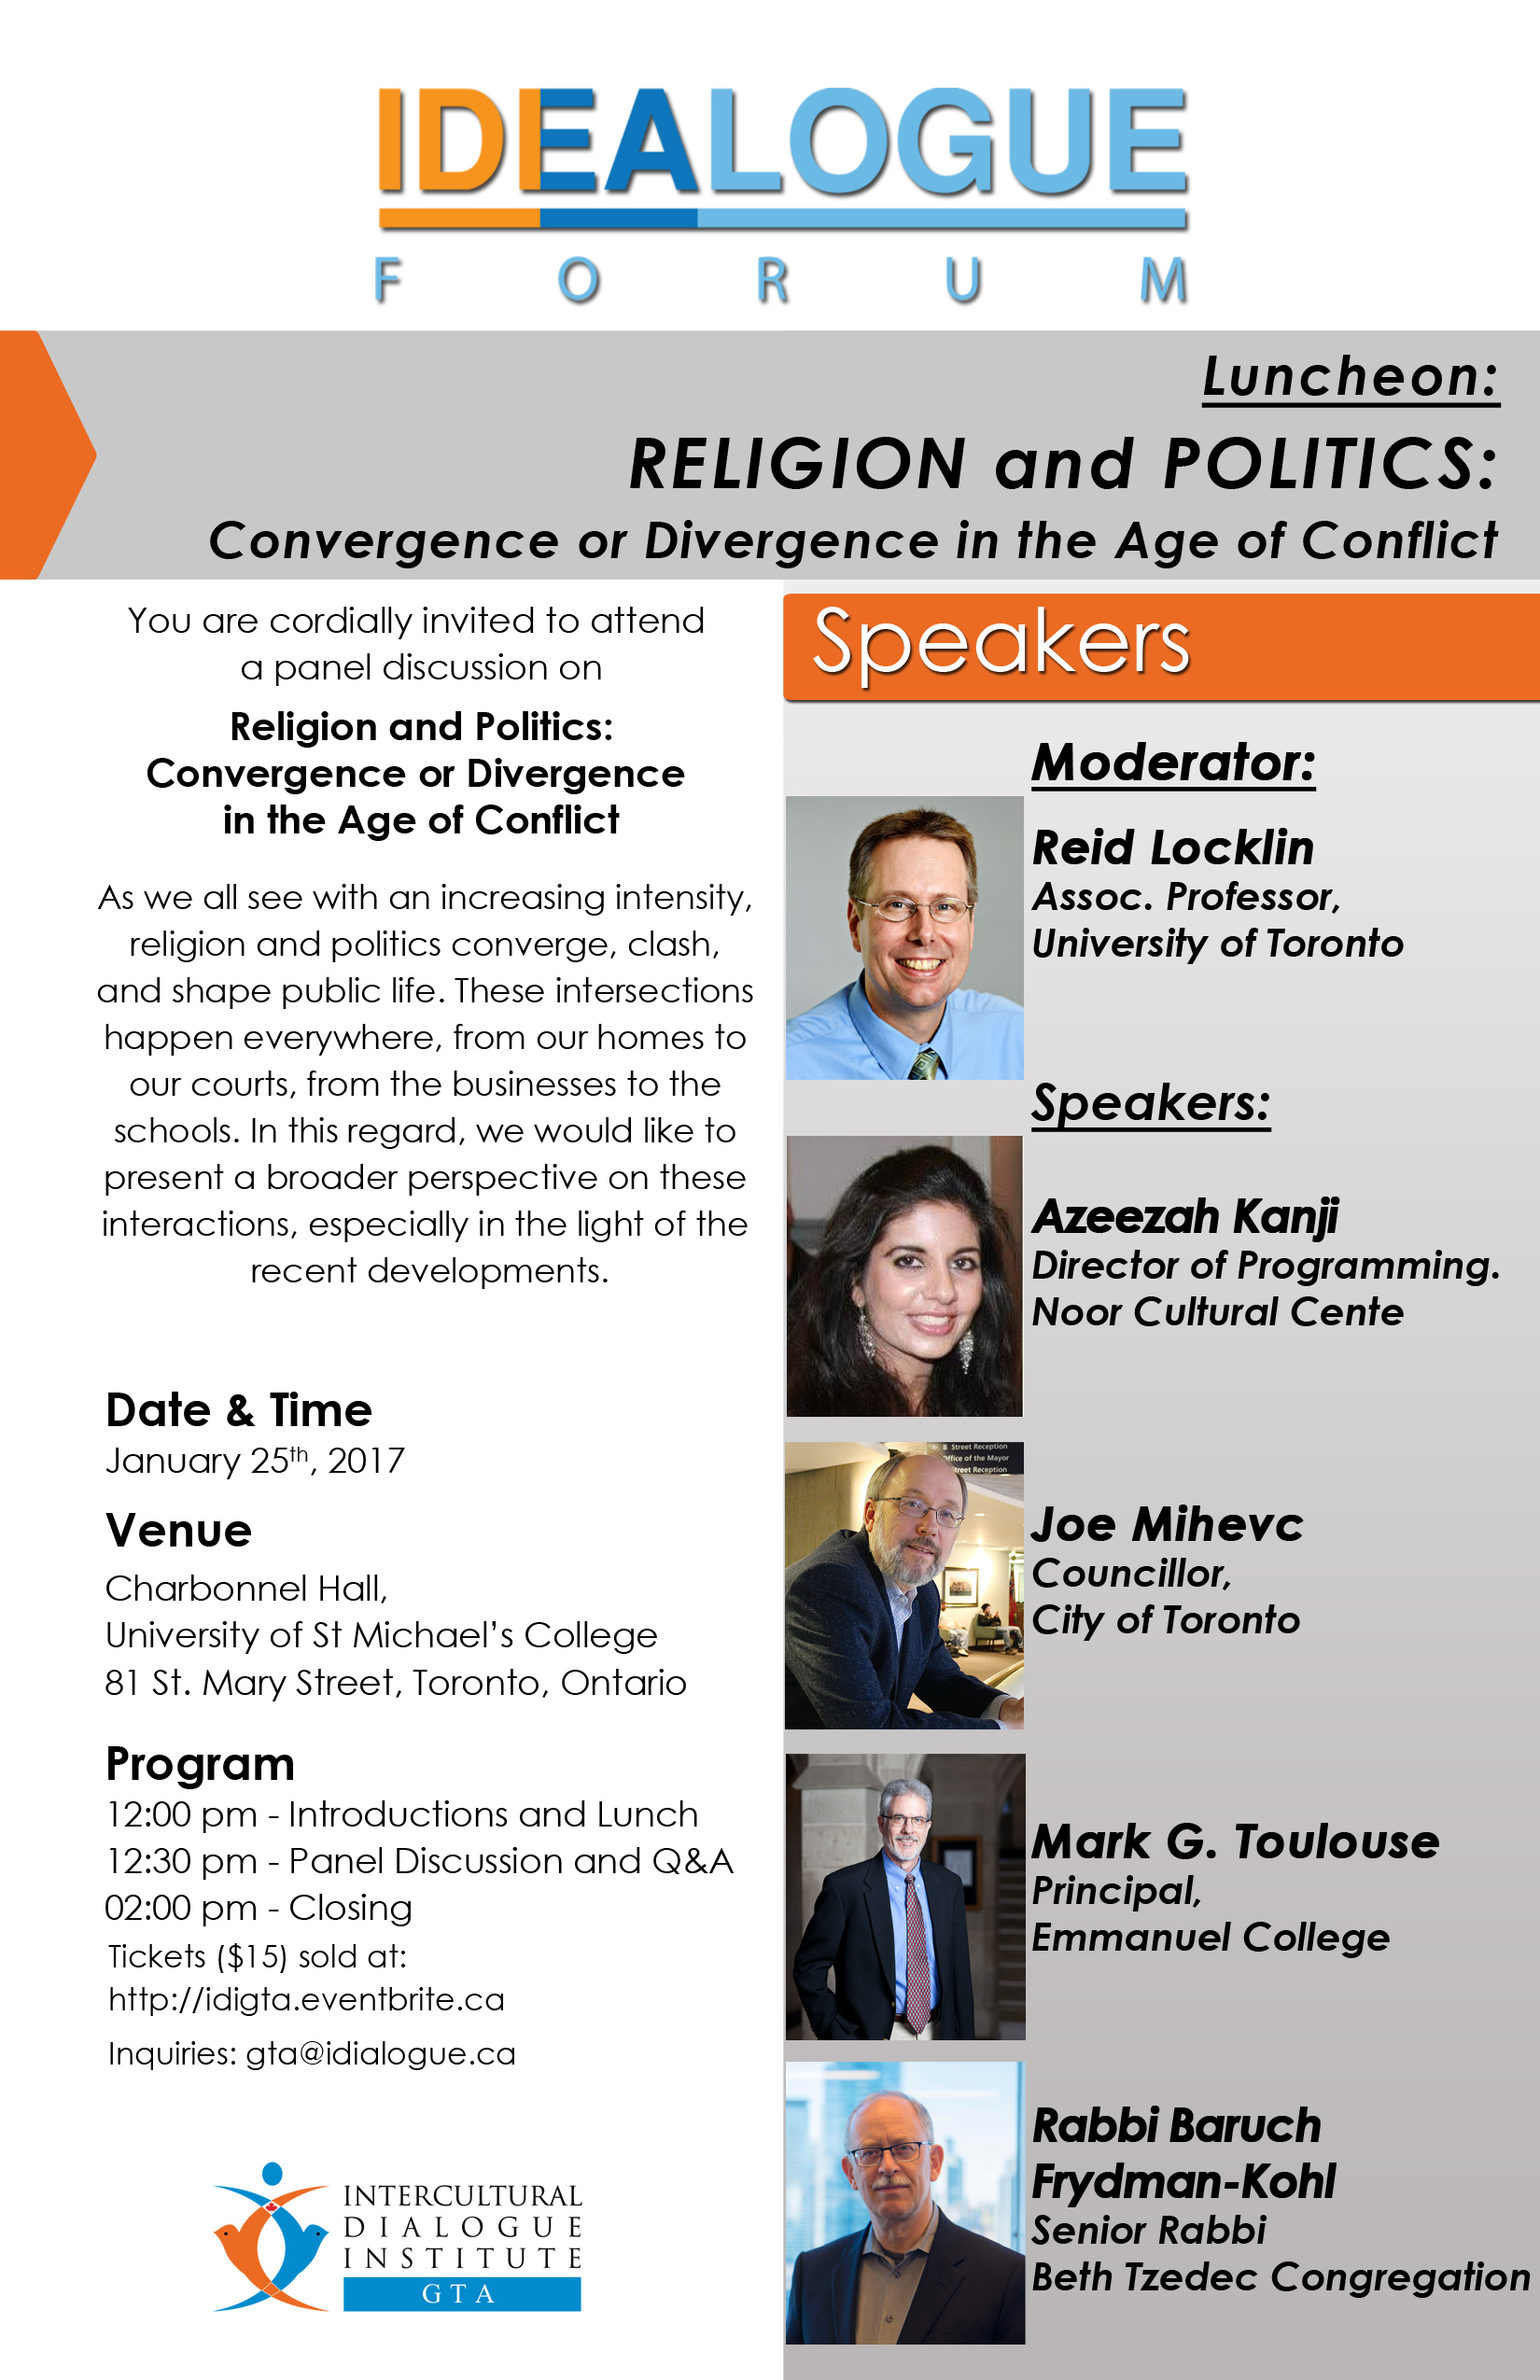 Luncheon: RELIGION and POLITICS: Convergence or Divergence in the Age of Conflict